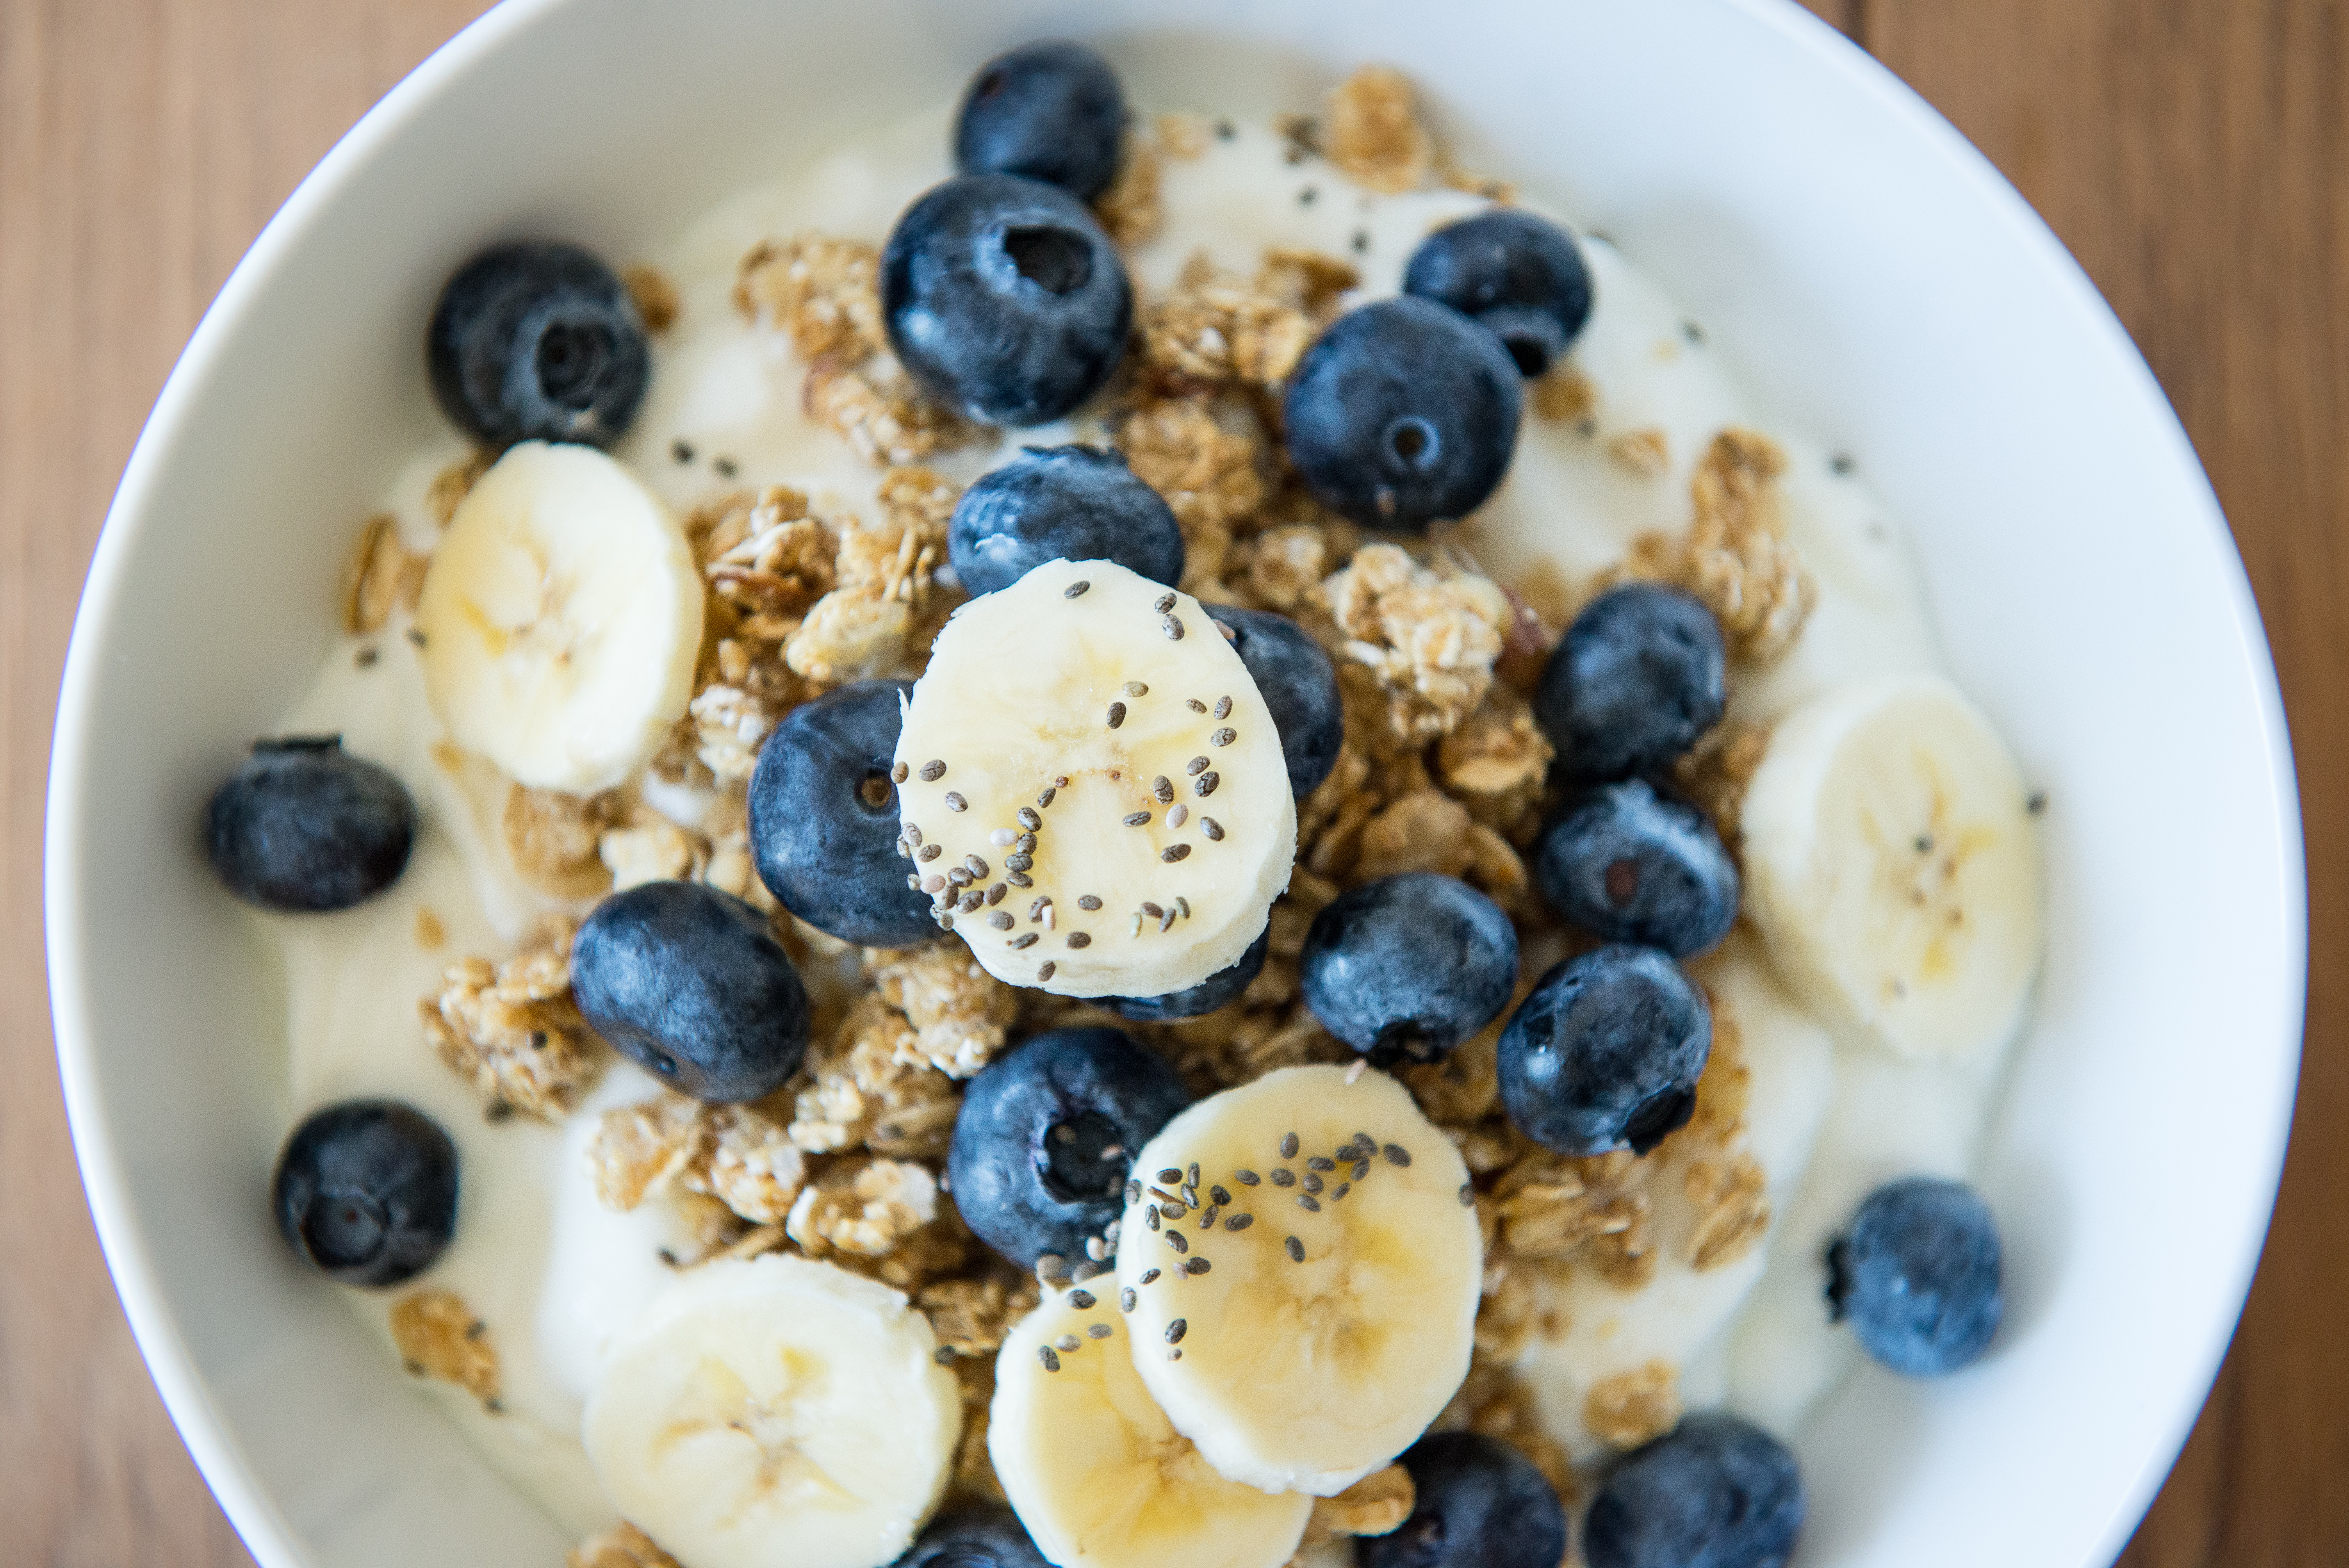 Cava Grills new airport location is serving breakfast including this yogurt with banana and blueberries. (Photo: Cava Grill)